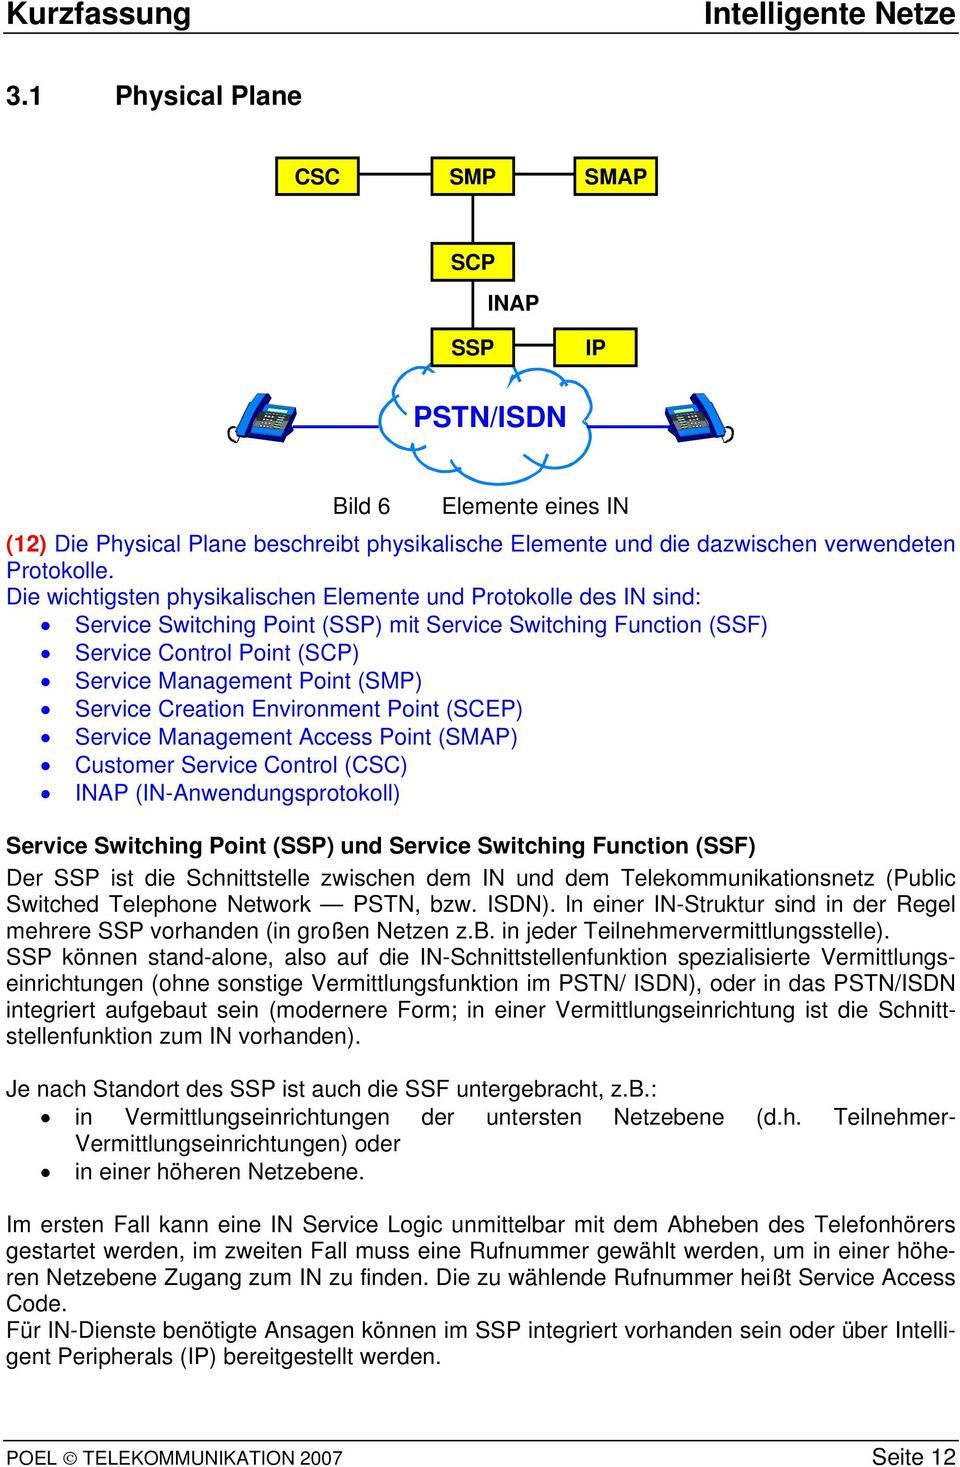 Creation Environment Point (SCEP) Service Management Access Point (SMAP) Customer Service Control (CSC) INAP (IN-Anwendungsprotokoll) Service Switching Point (S) und Service Switching Function (SSF)